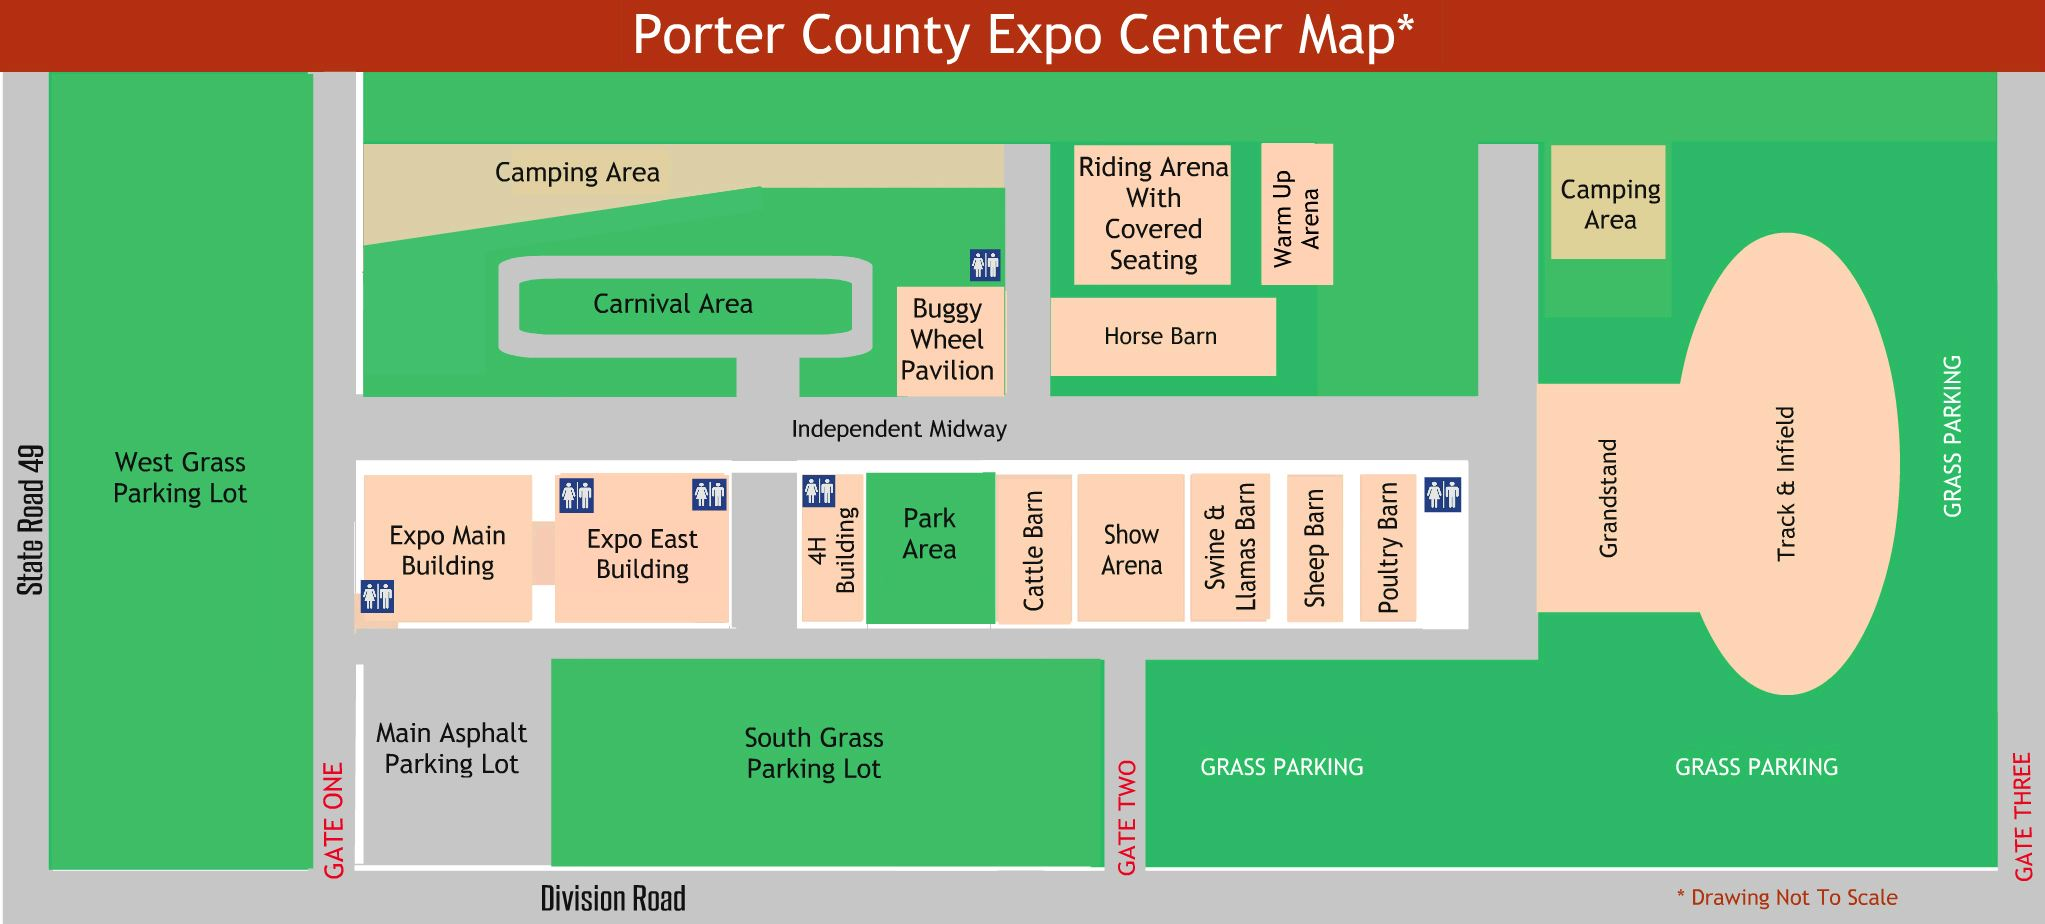 Map of the grounds of the Porter County Expo Center